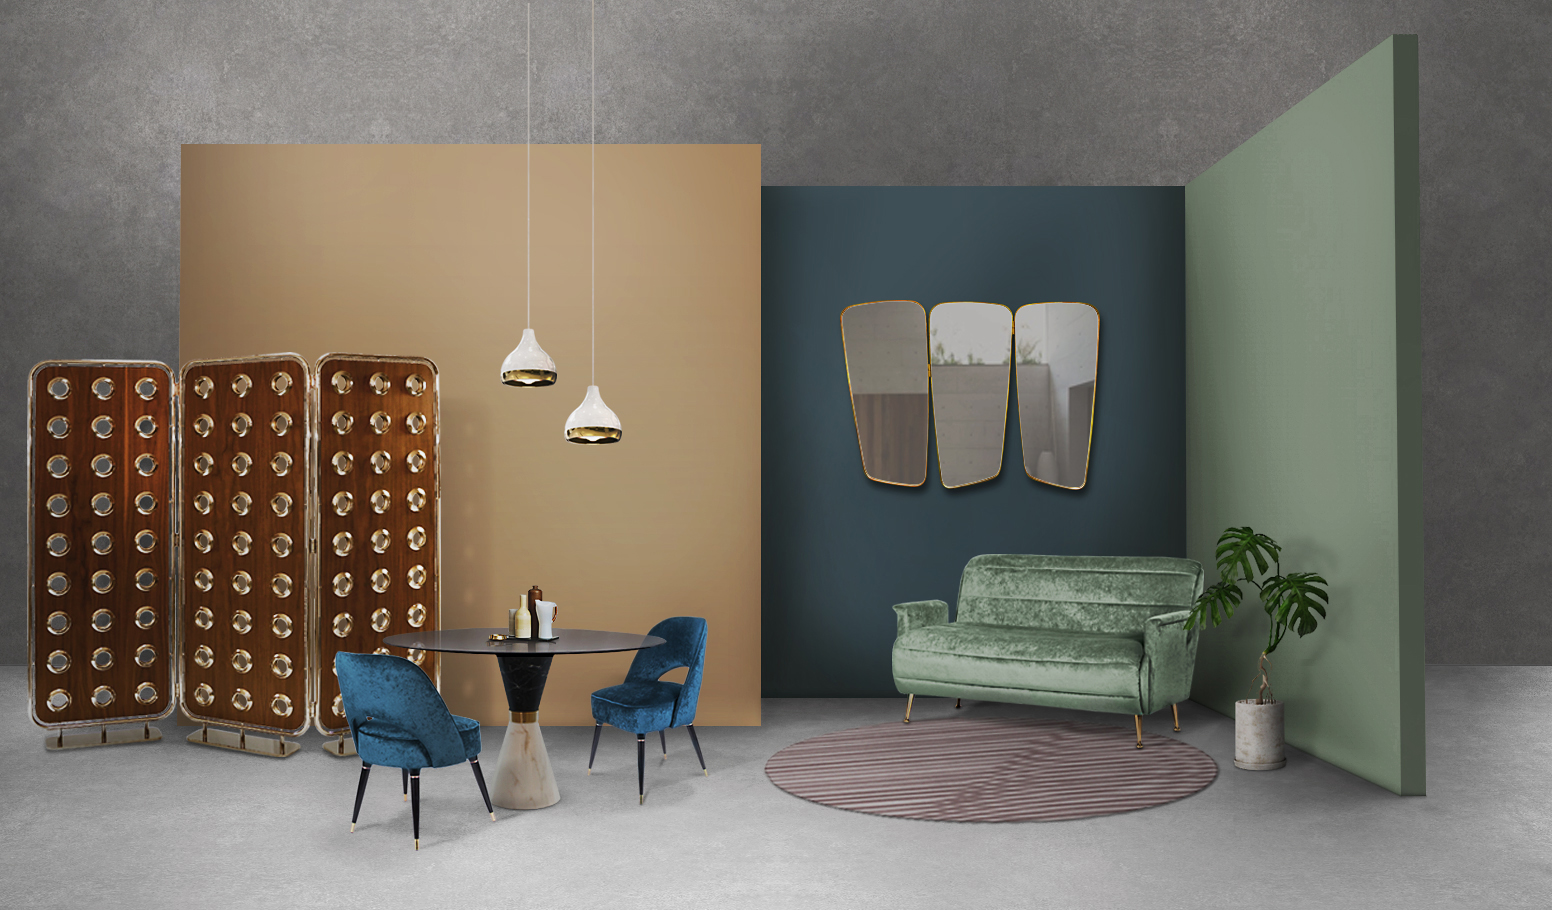 Maison et Objet 2020: A Travel in Time That You Can't Miss! maison et objet Maison et Objet 2020: A Travel in Time That You Can't Miss! Hanna pendant51fa07c1f2447ca1292978a2fd96311b 1